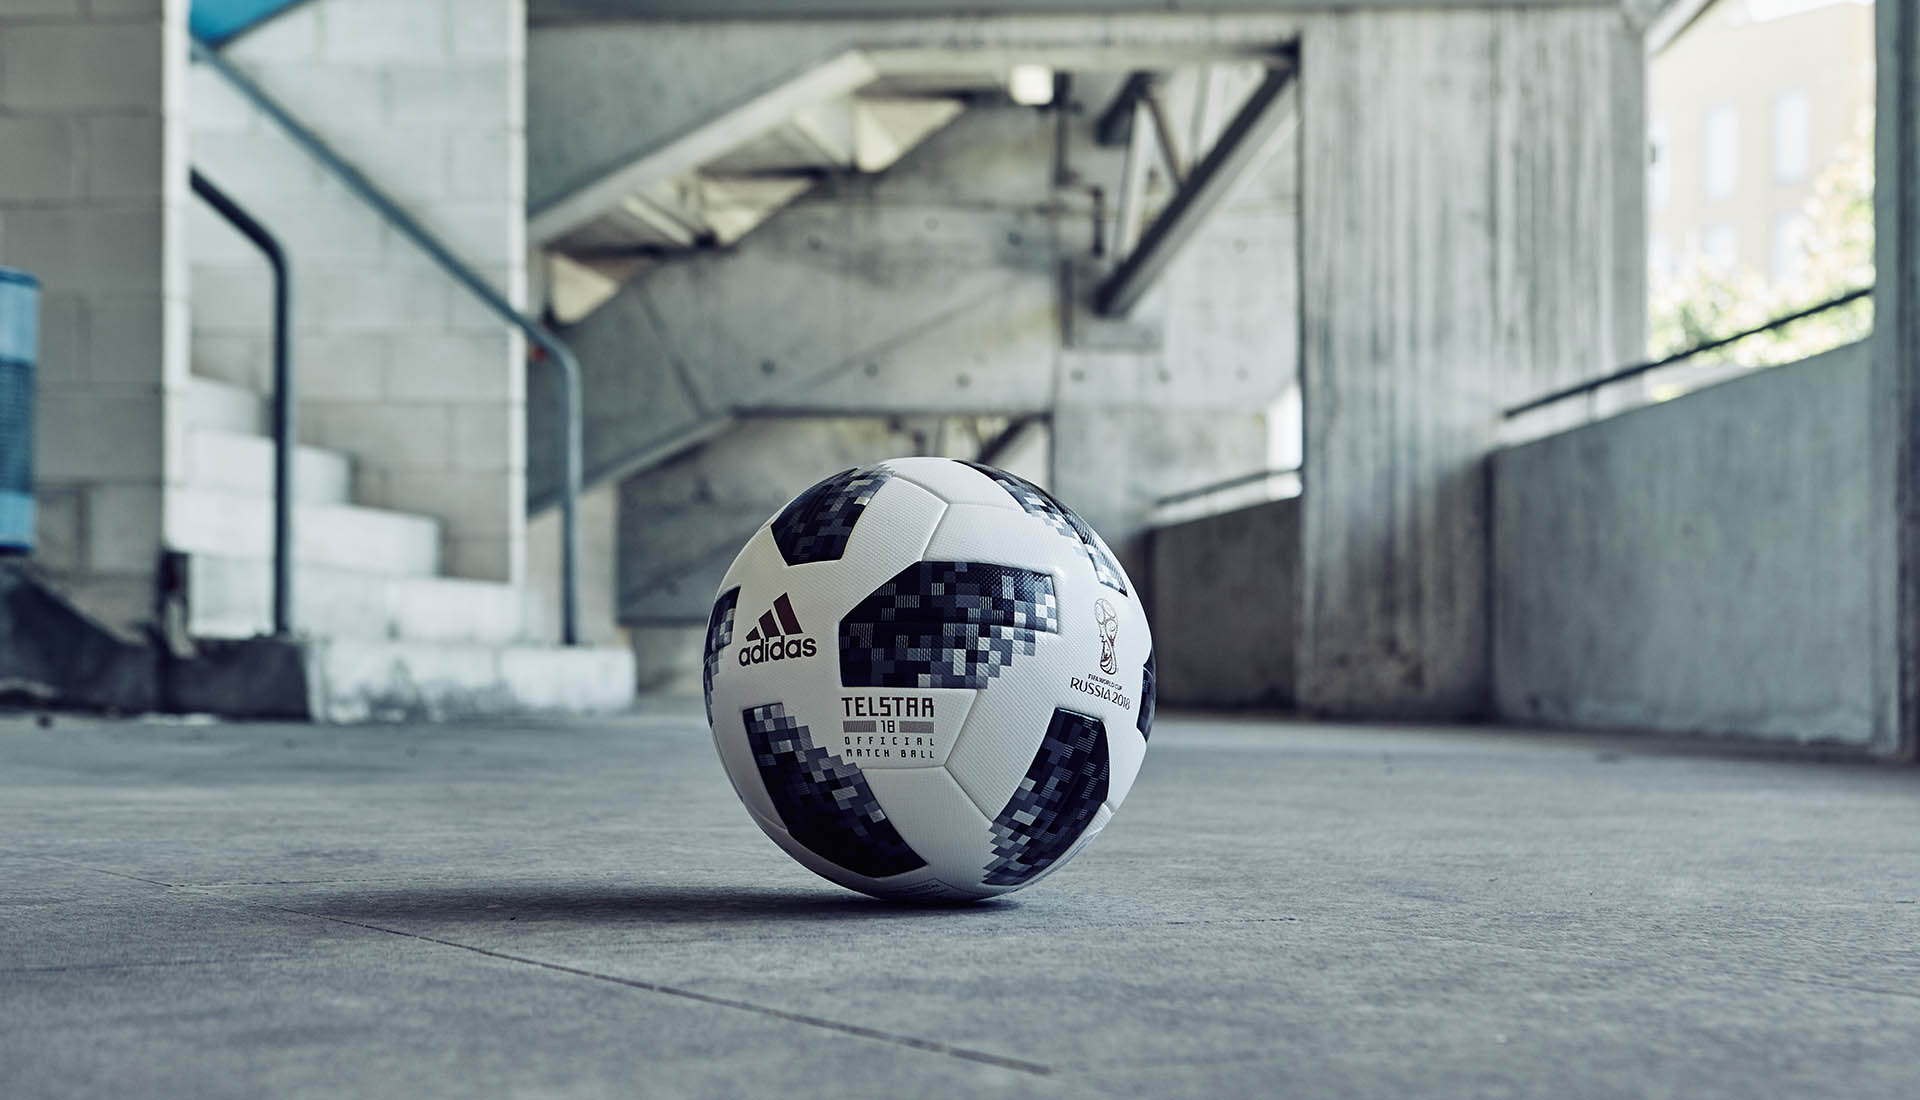 world-cup-match-ball-adidas-soccerbible_0000__fg_1956